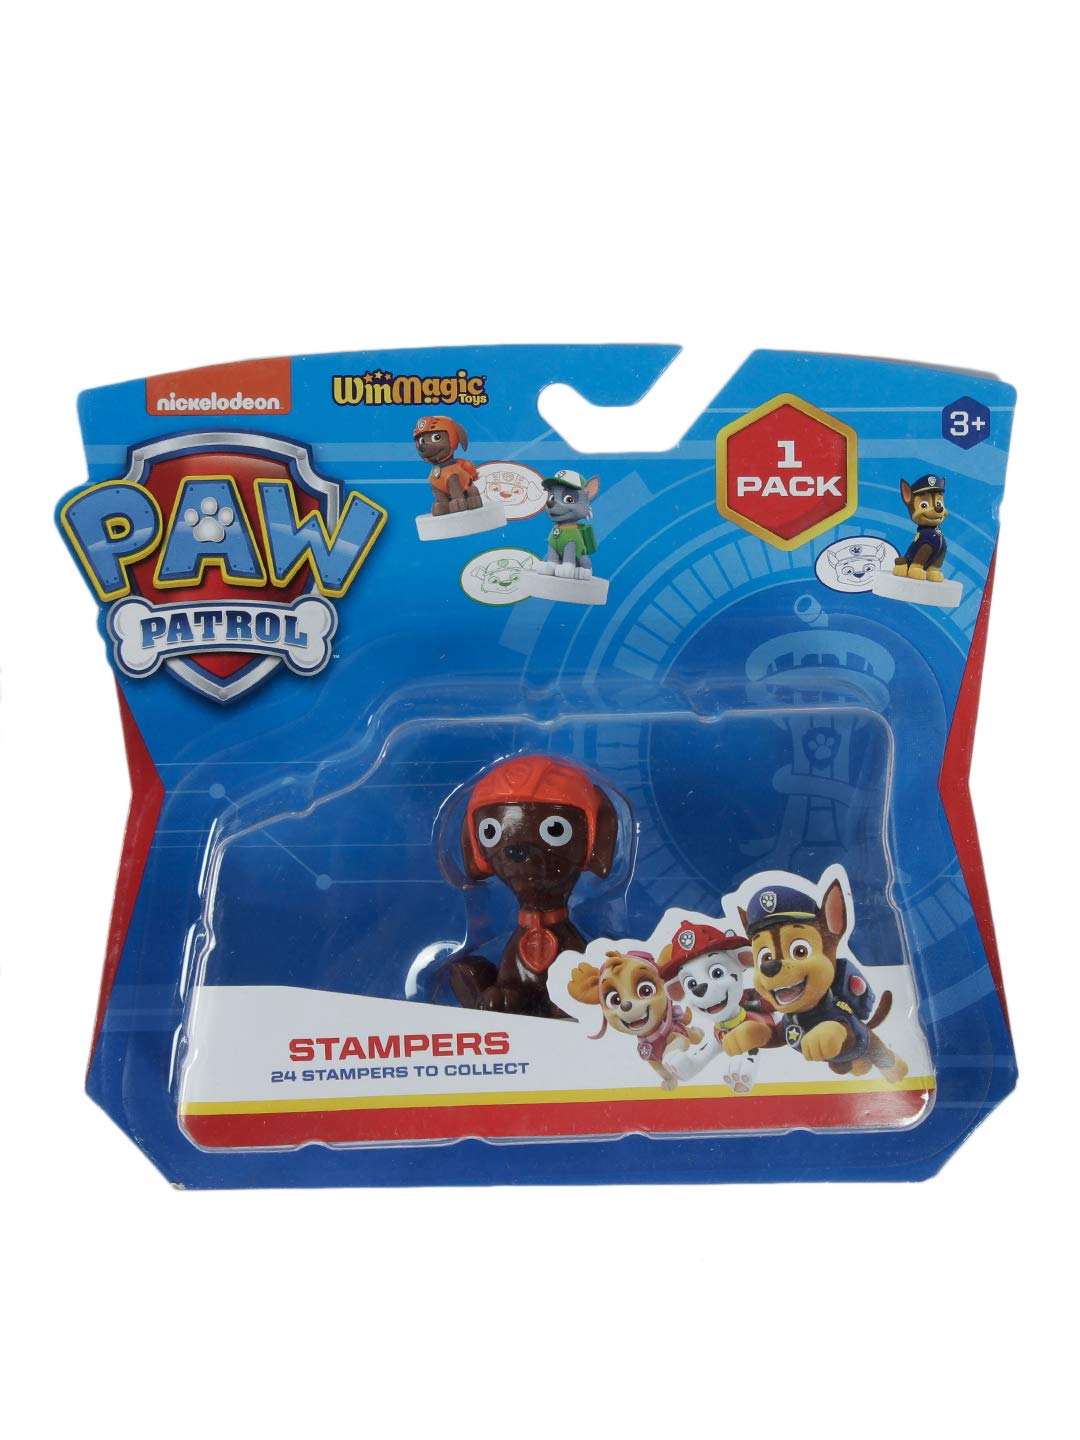 Paw Patrol Stampers 1 Pc Blister (S1) - Zuma for Kids 3+ & Above